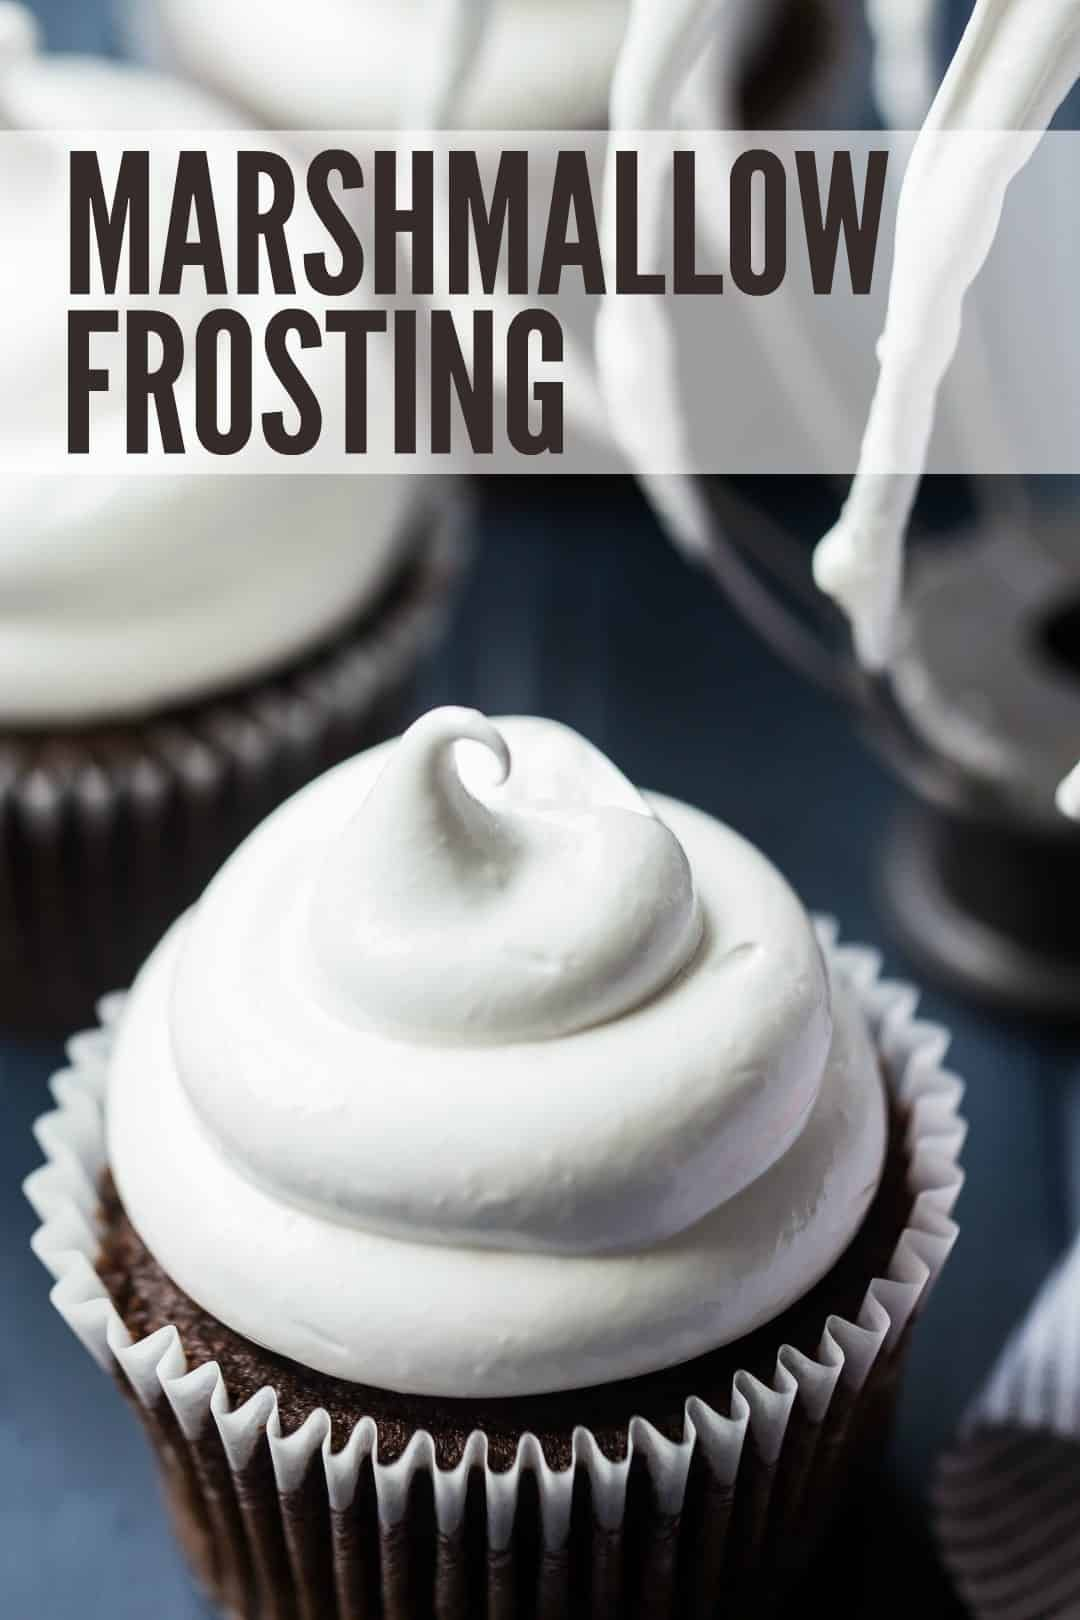 Marshmallow Frosting Marshmallow Frosting: fluffy, sweet, and light as air! Plus it's quick to make with just a few simple ingredients.